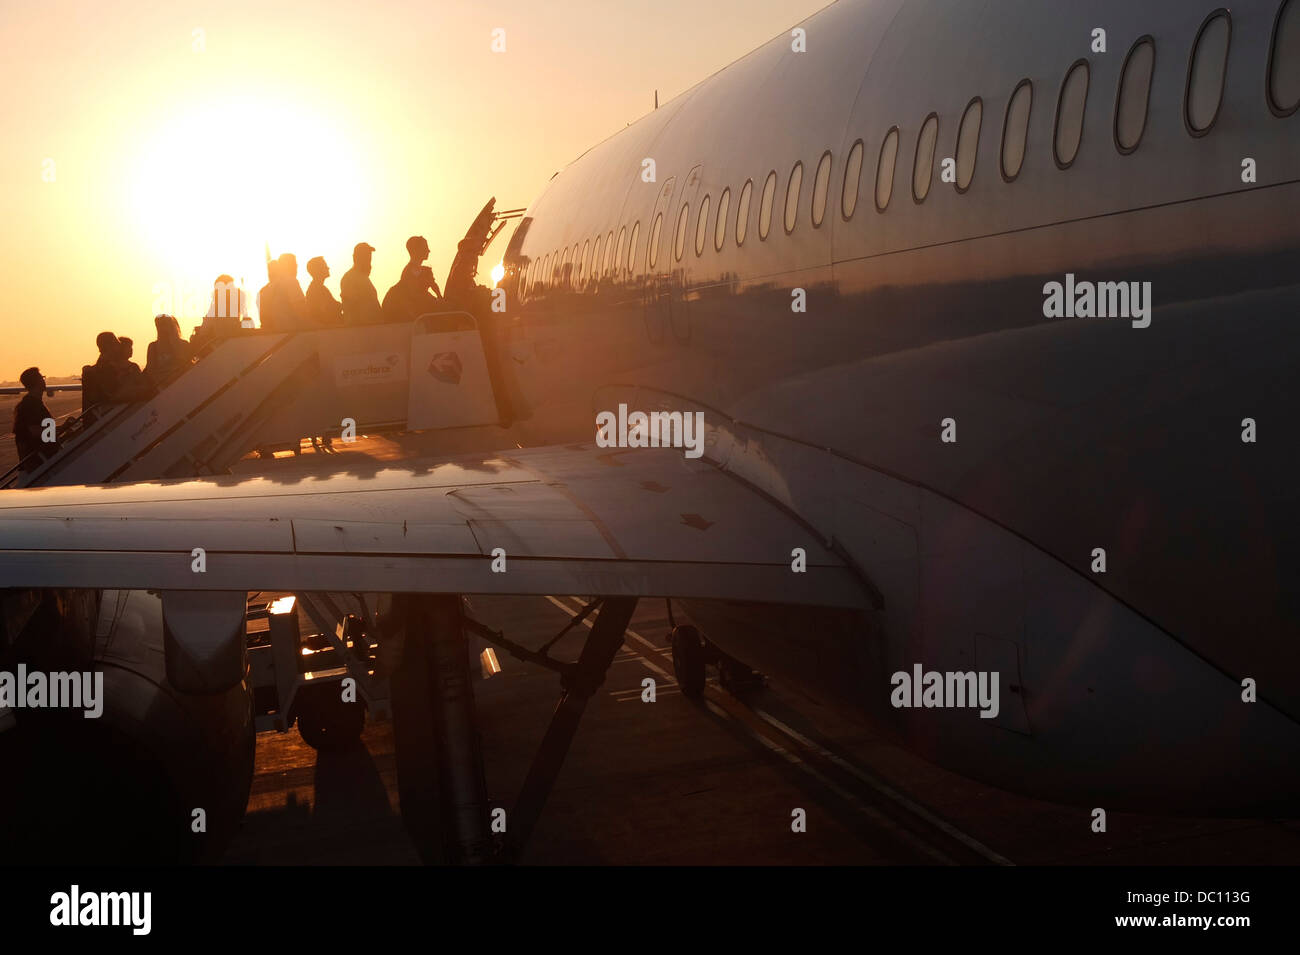 passengers boarding airplane - Stock Image